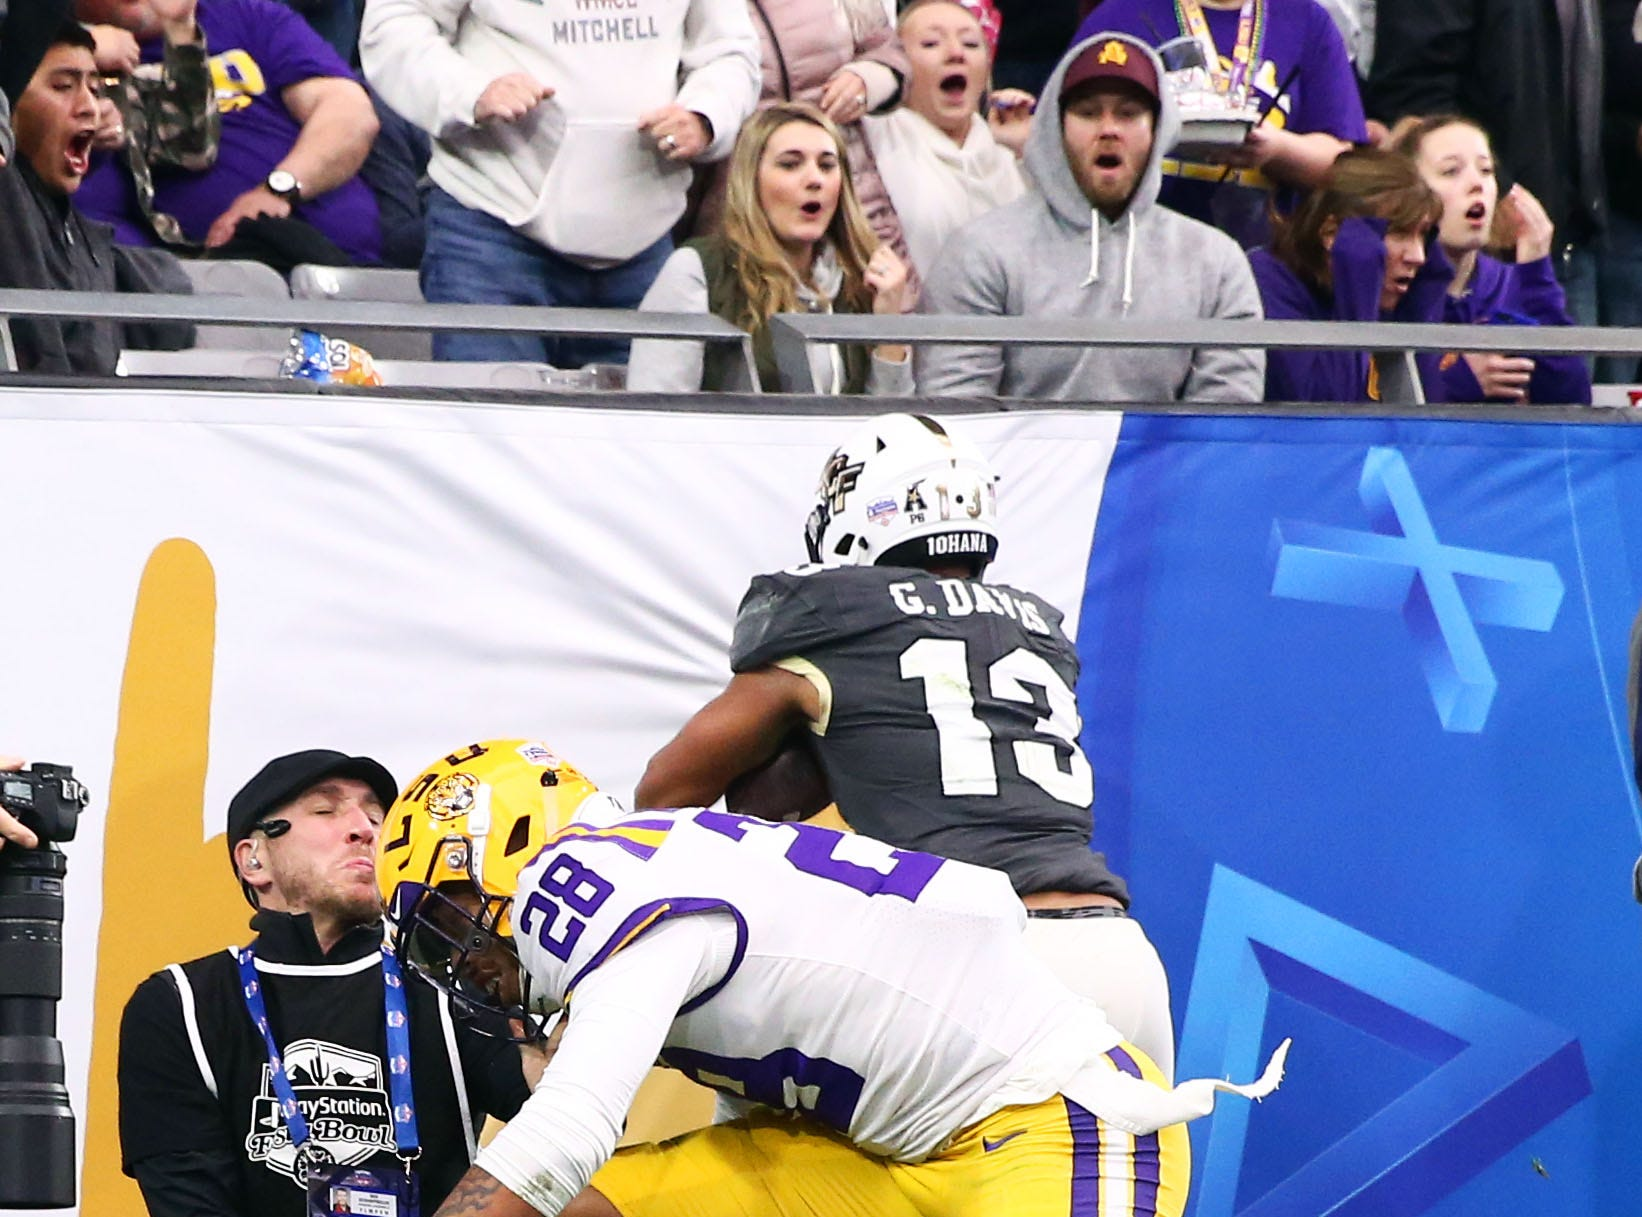 LSU Tigers corner back Mannie Netherly (28) takes-out a cameraman as UCF Knight wide receiver Gabriel Davis (13) makes a touchdown catch in the first half at the Fiesta Bowl on Jan. 1 at State Farm Stadium.